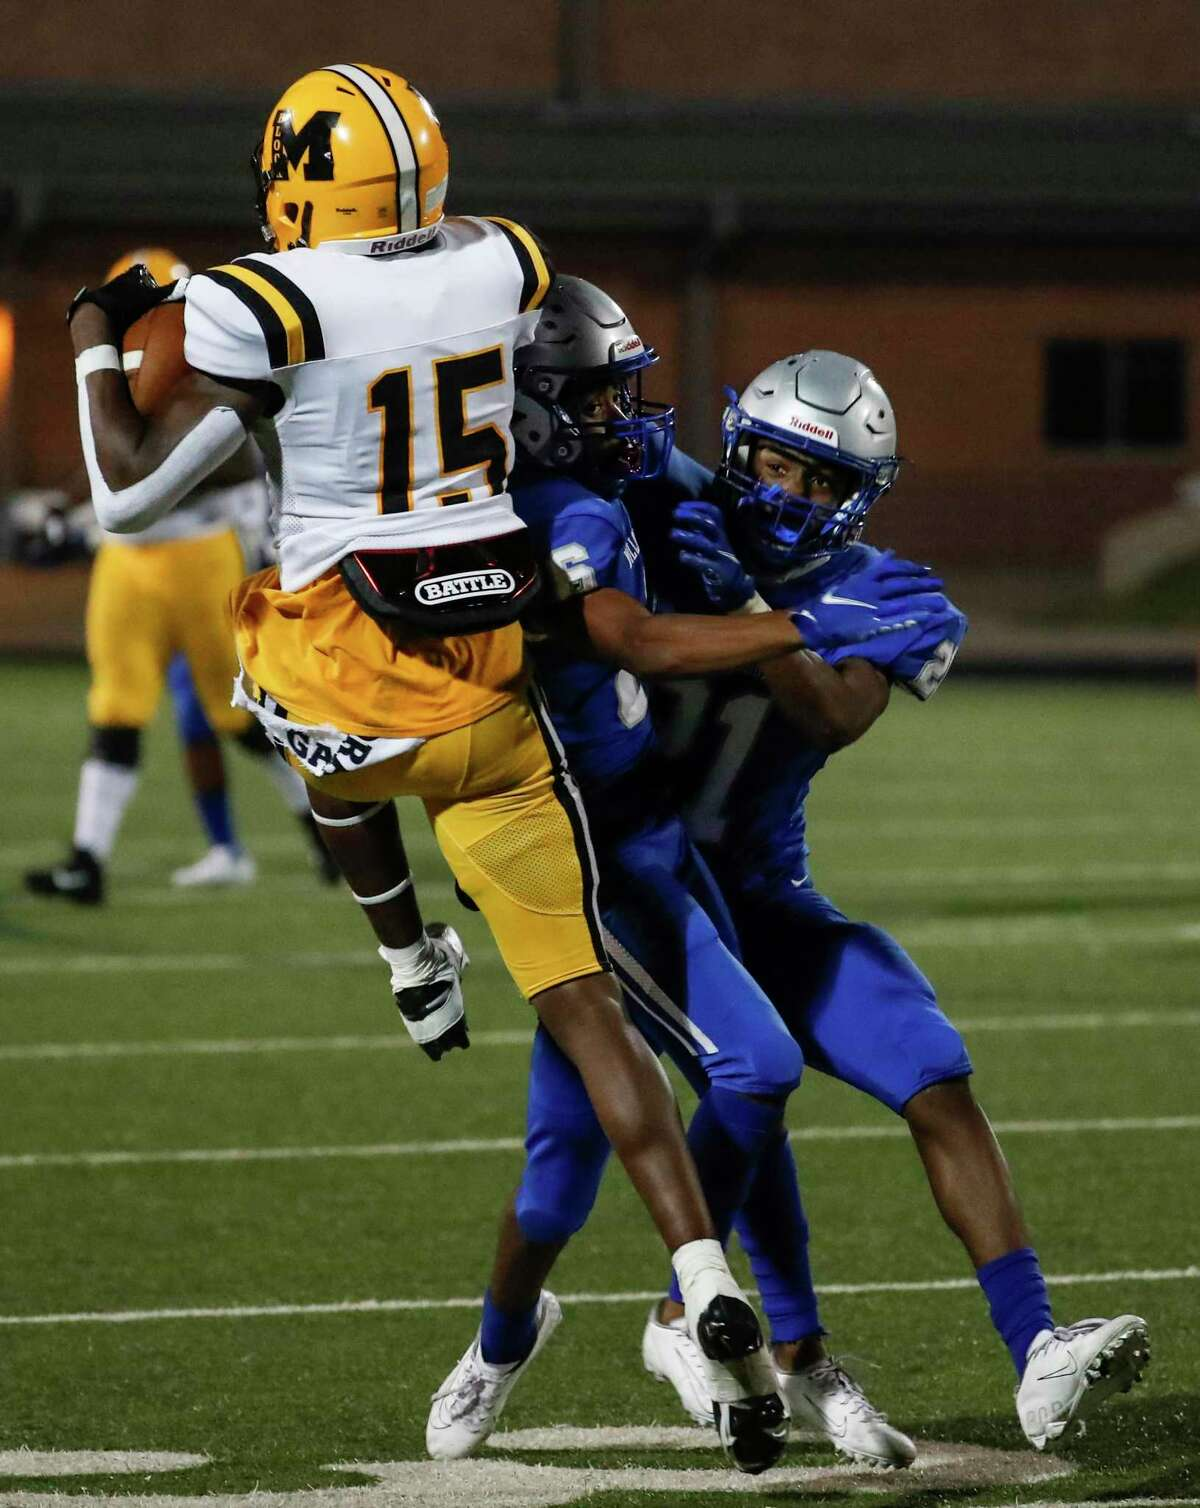 Fort Bend Marshall wide receiver Chris Marshall (15) turns to make a first down reception against Willowridge defensive backs Je'von Johnson and Kalem Williams (21) during an 11-5A matchup at Hall Stadium Thursday, Nov. 12, 2020 in Missouri City.